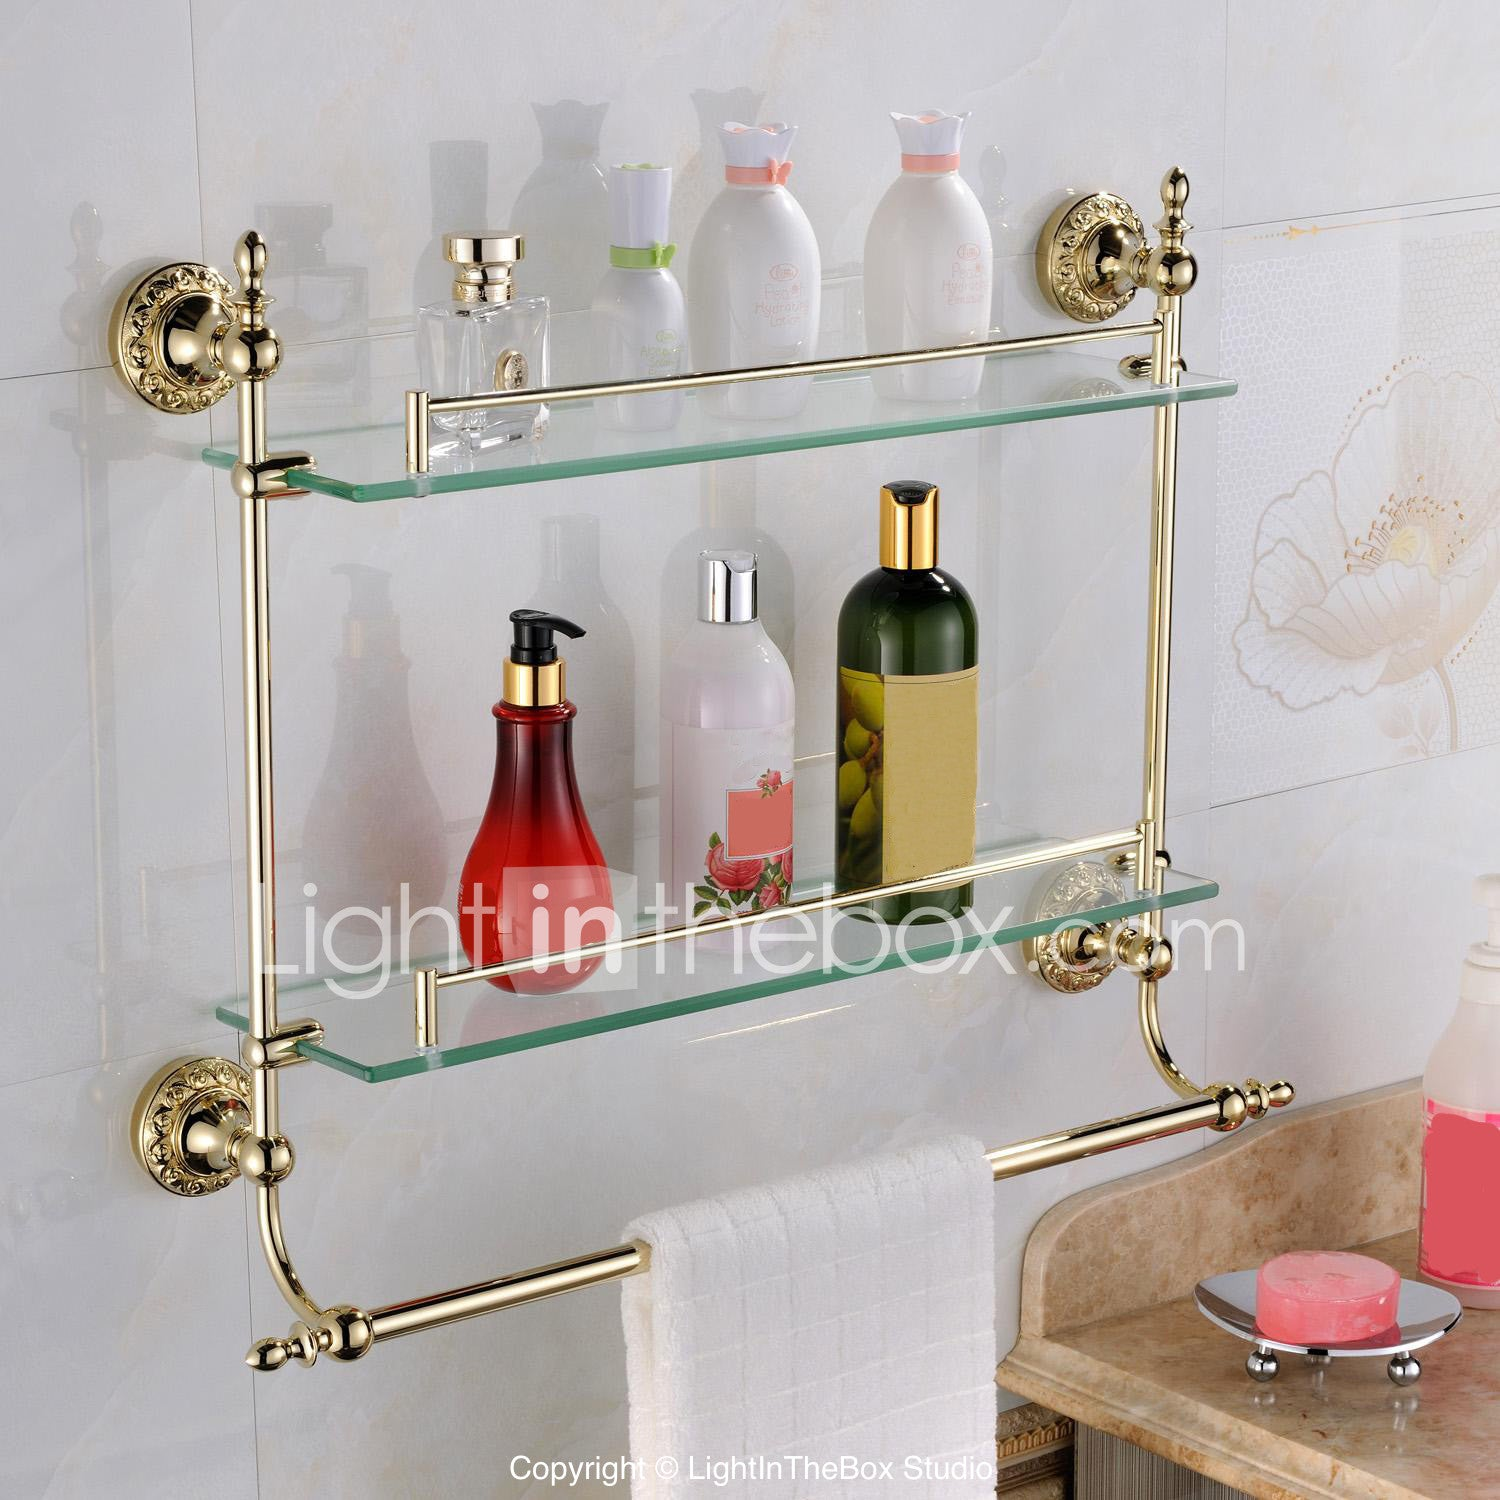 Bathroom Shelf Contemporary Brass Glass 1 pc - Hotel bath #04879733